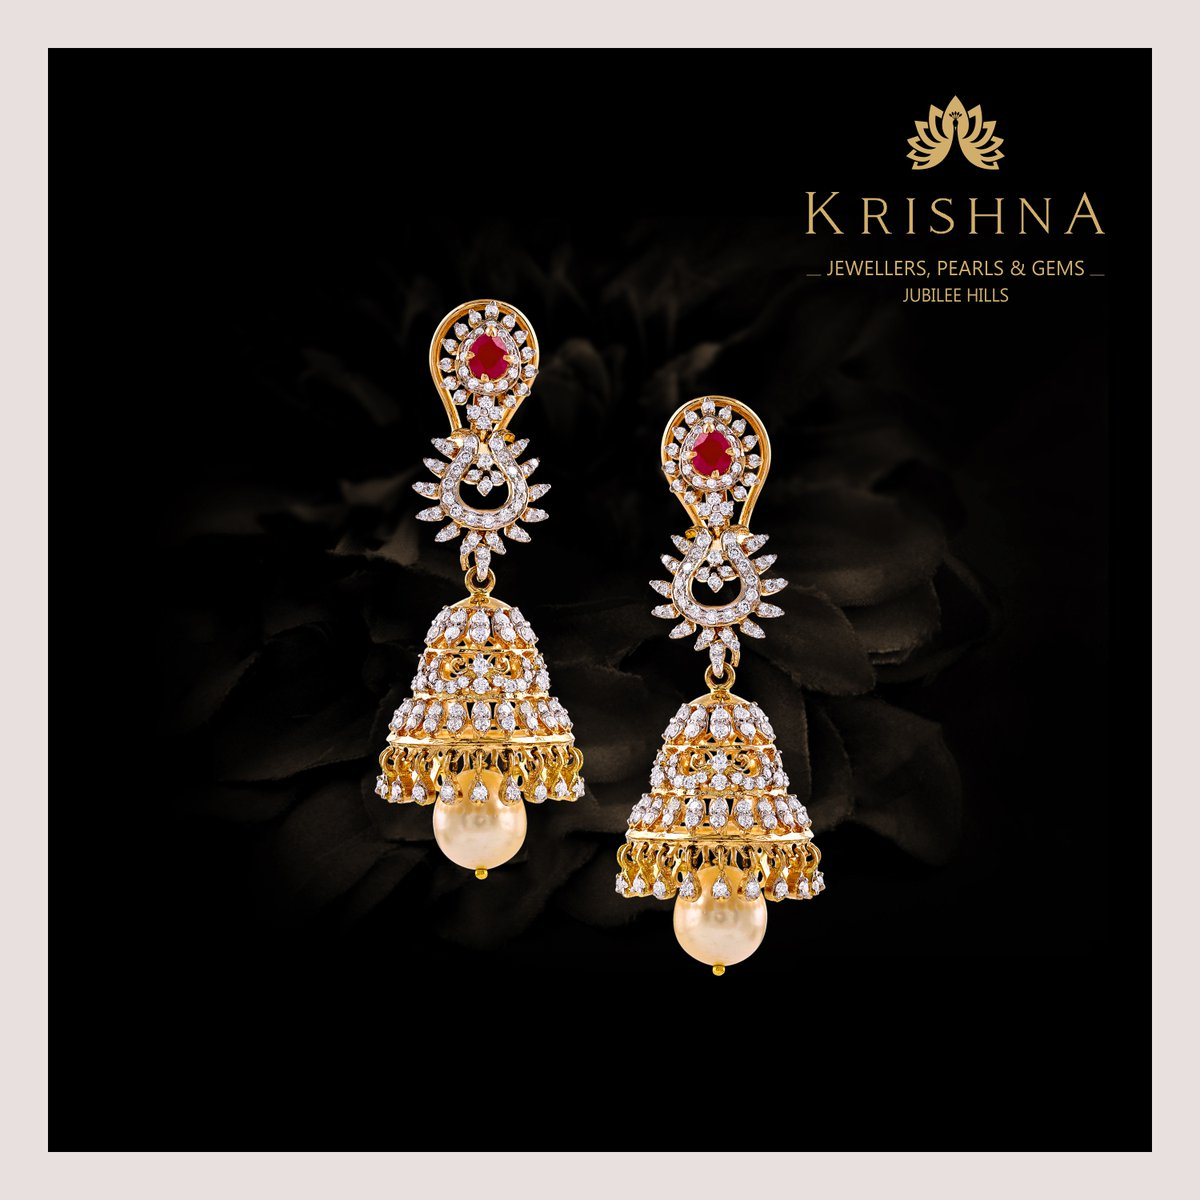 Pear-shaped gorgeous dangling diamond Earrings crafted in yellow gold with rubies, South sea pearls looks fabulous on women of all ages.  For more details Contact Us @ +91-7093324141. #diamondearrings #jhumkaearrings #diamondjewellery #diamonds #diamondjhumkaearringspic.twitter.com/7wKl0BYaUJ